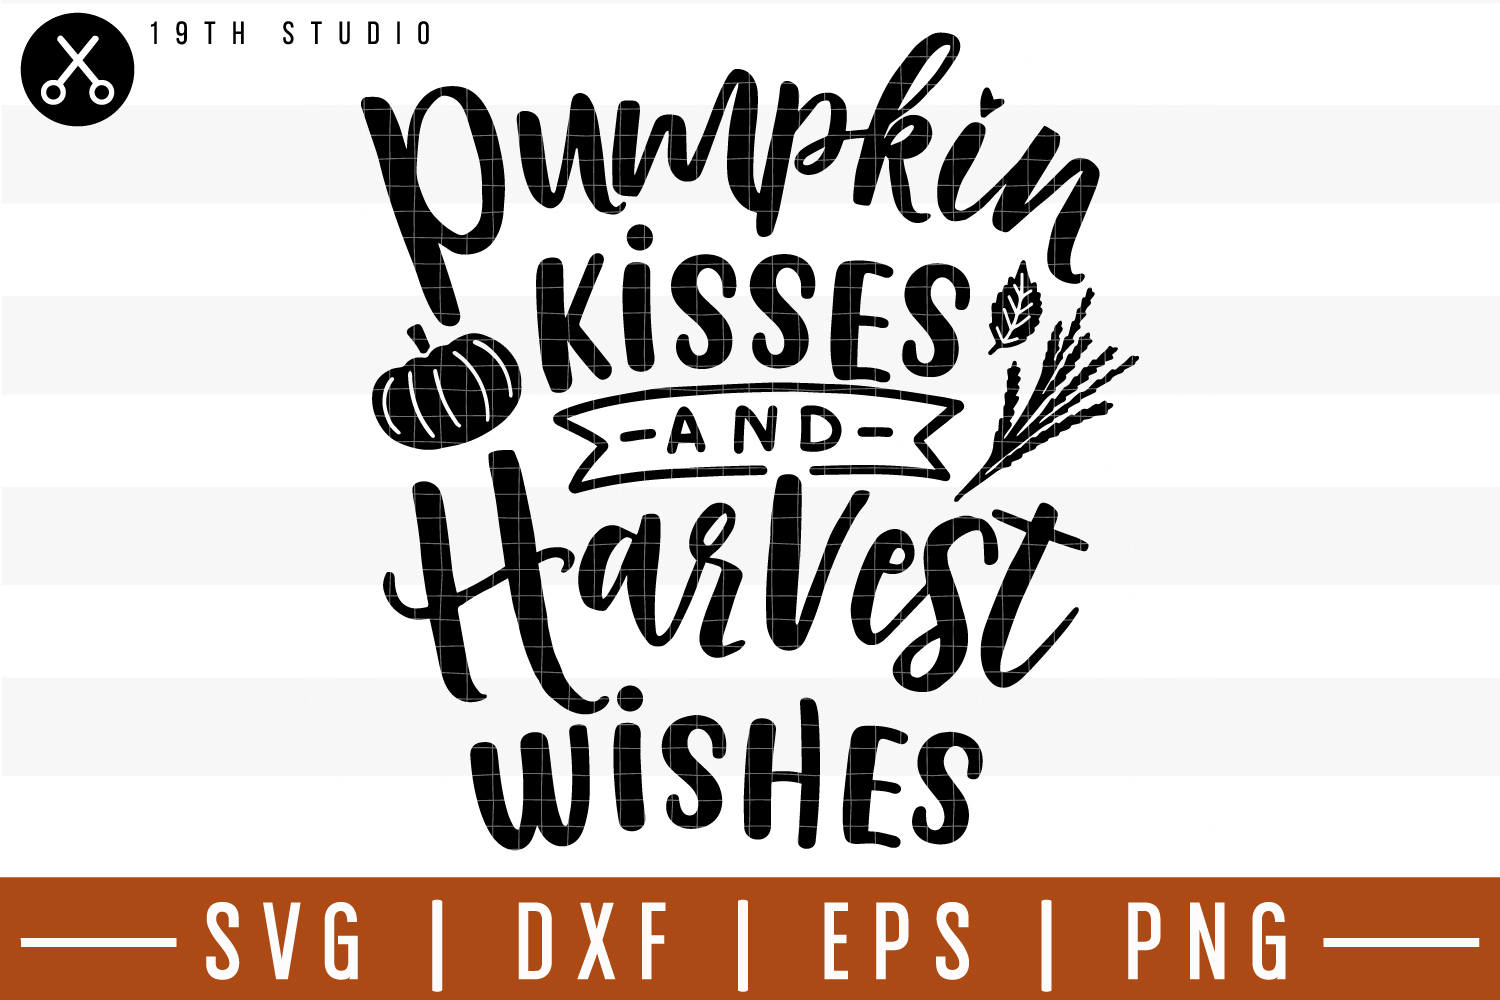 Pumpkin kisses and harvest wishes SVG| Fall SVG example image 1